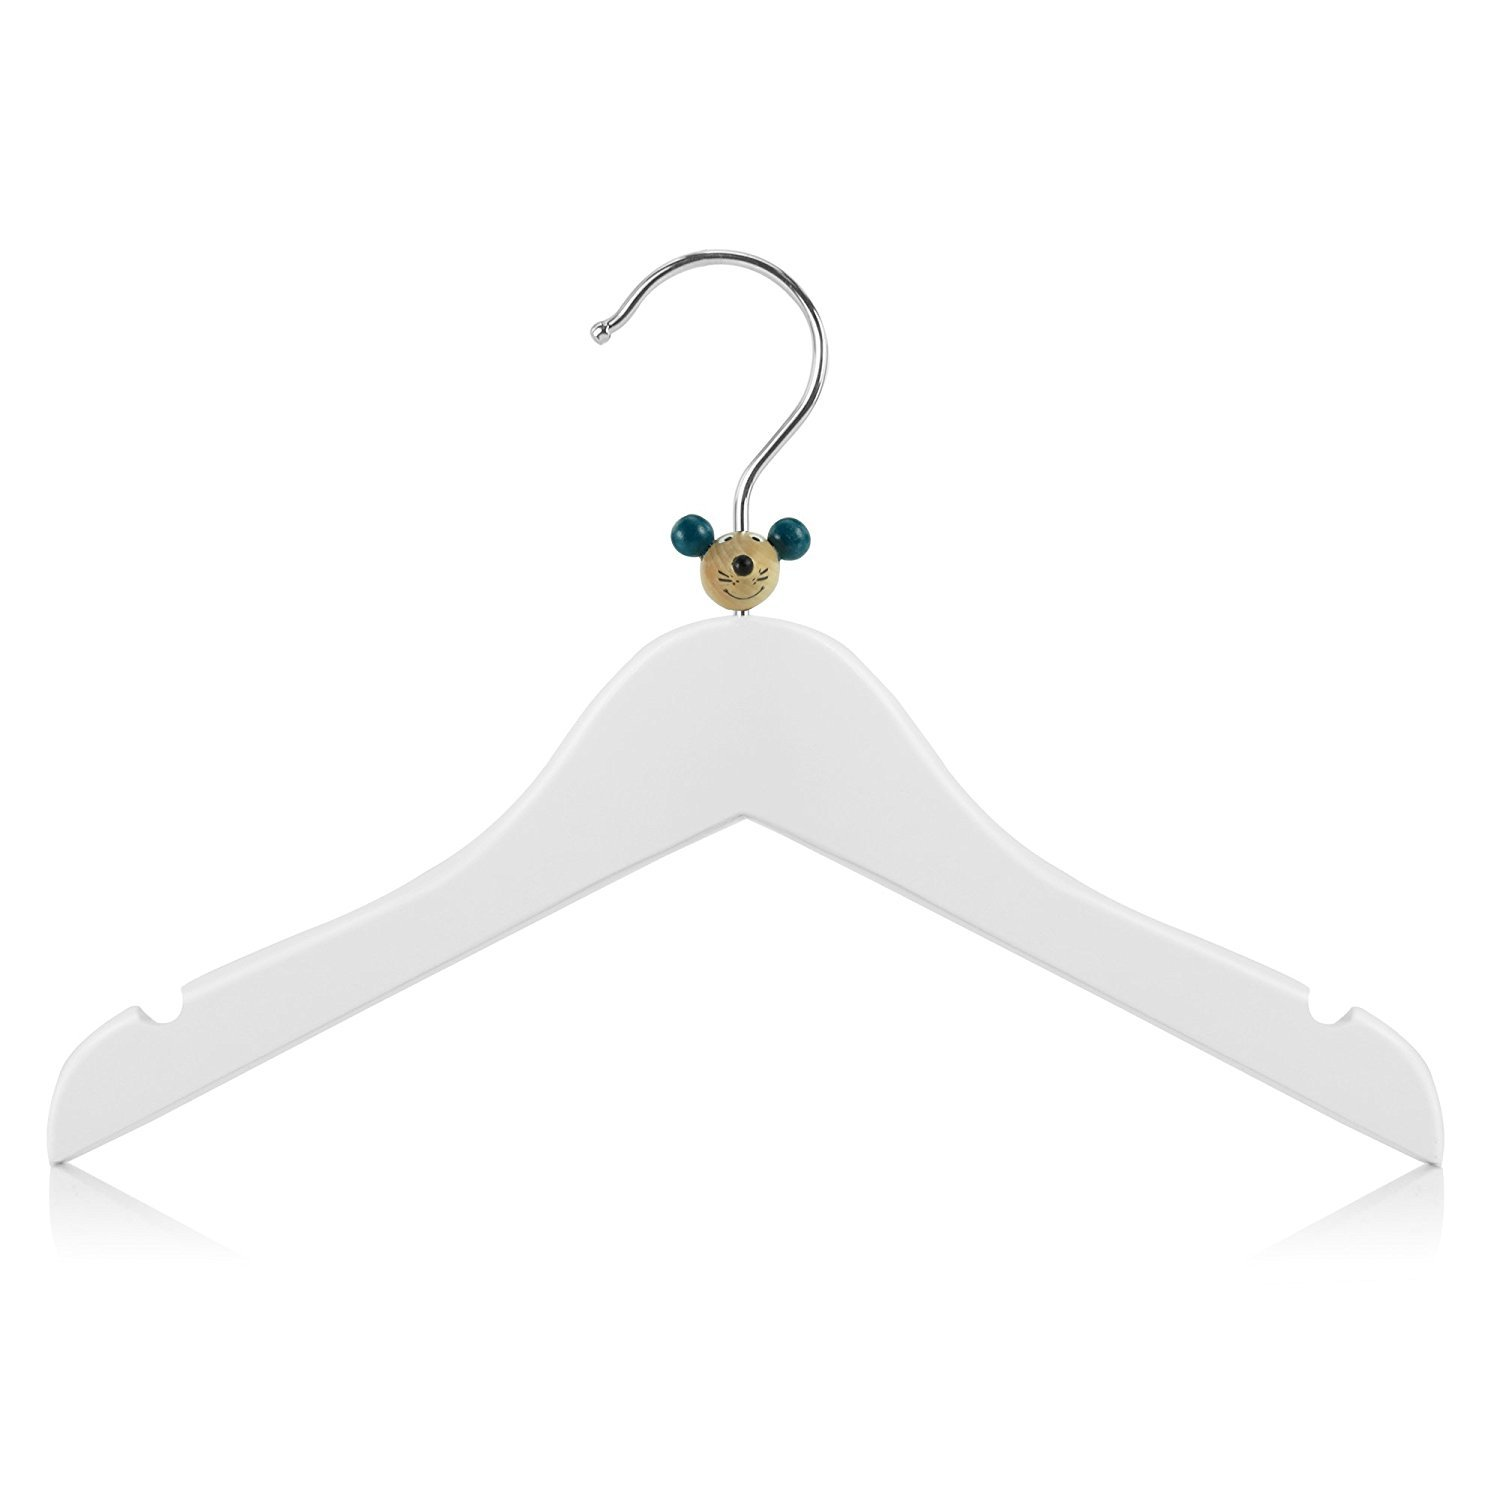 Hangerworld Baby & Toddler 11.8'' Wooden Coat Hangers with Fun Mixed Animal Head Design, Pack of 18, White by HANGERWORLD (Image #3)